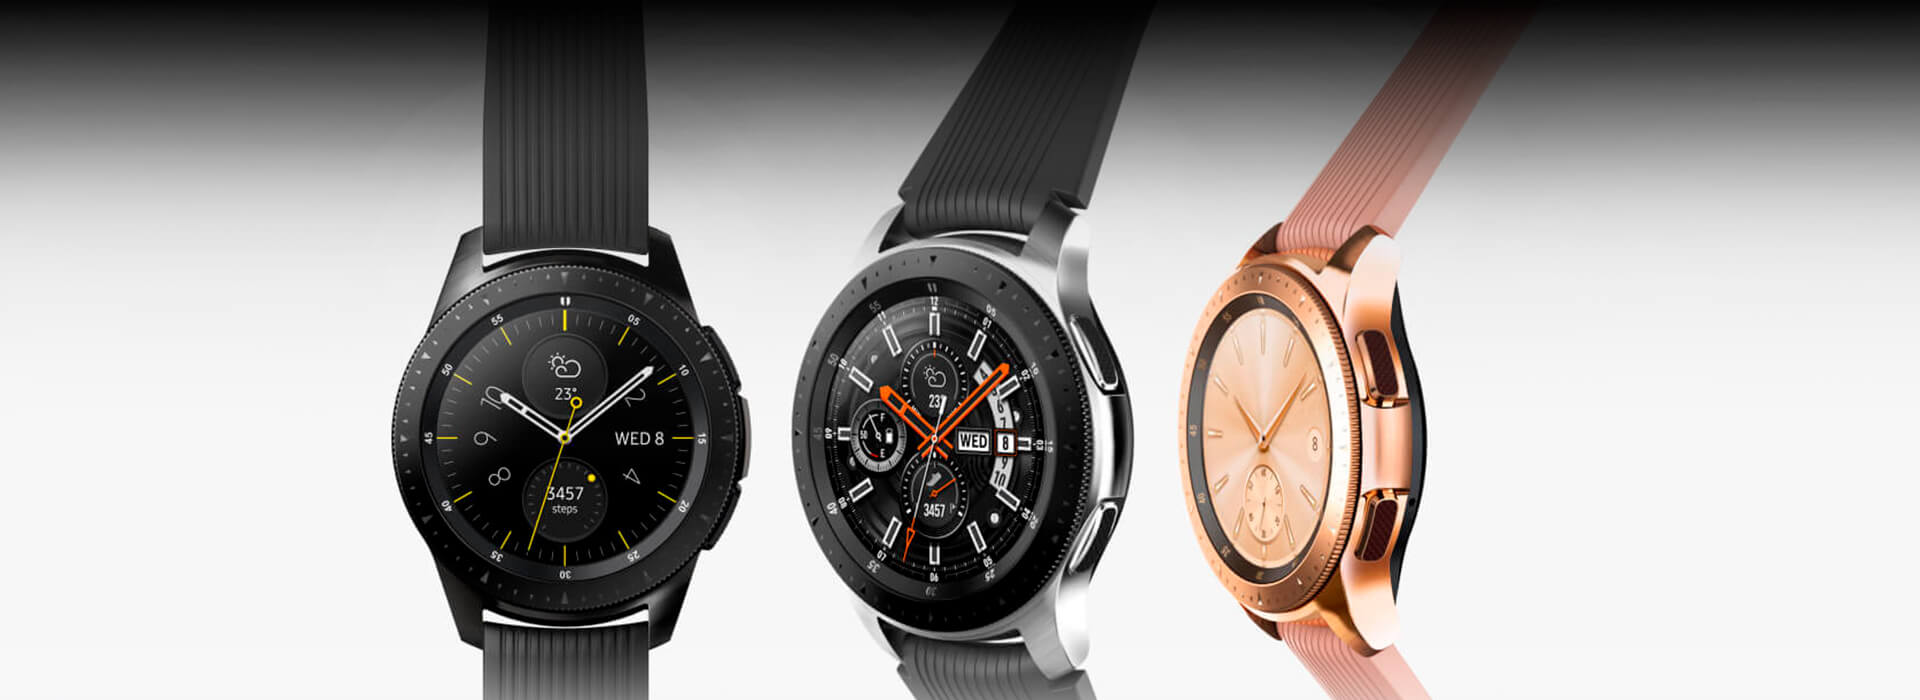 Фото 3 Samsung Galaxy Watch